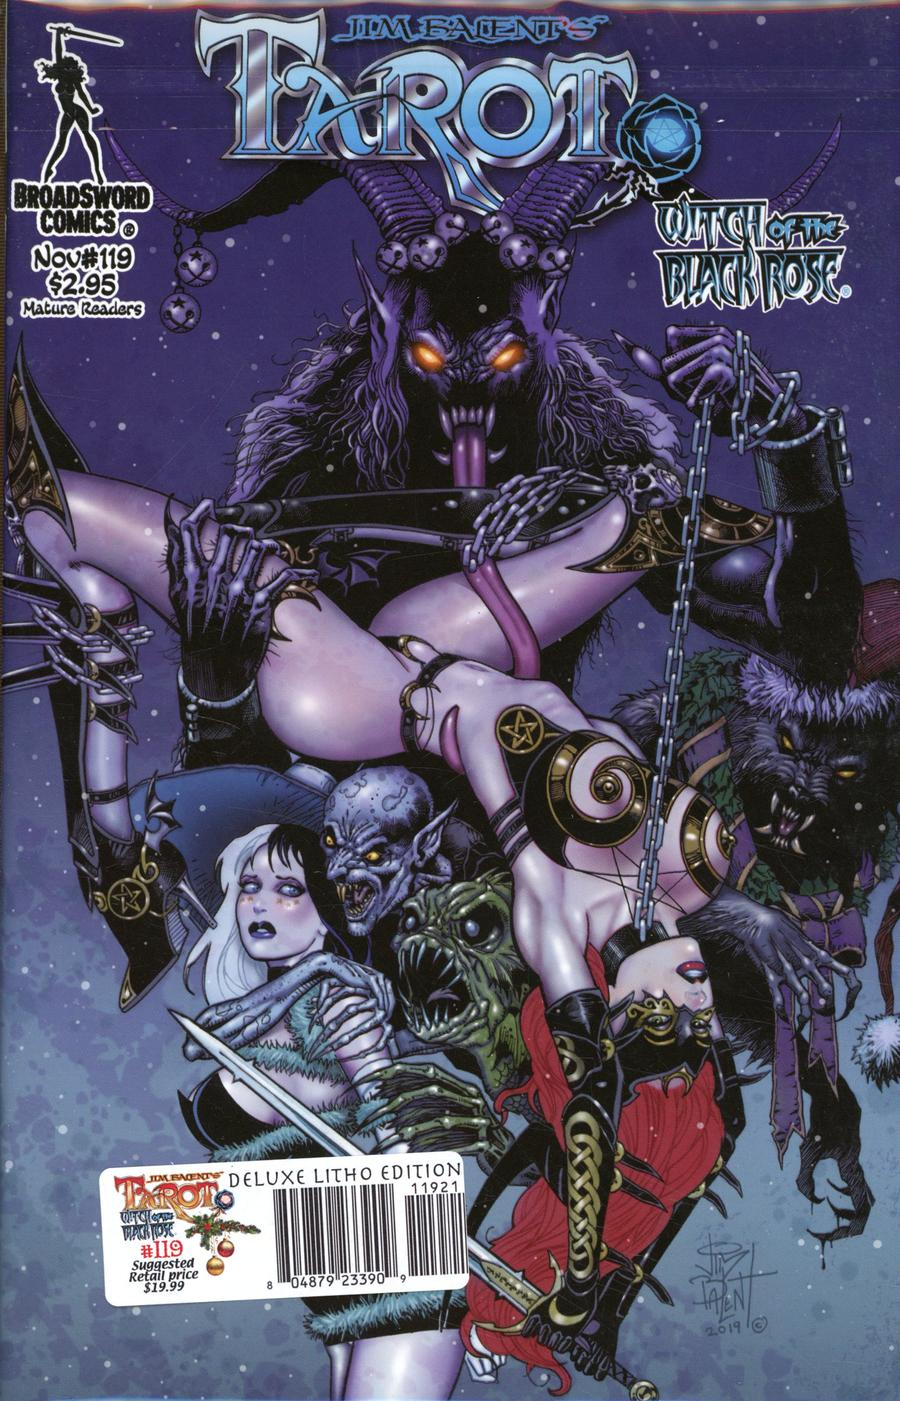 Tarot Witch Of The Black Rose #119 Cover D Deluxe Lithograph Edition